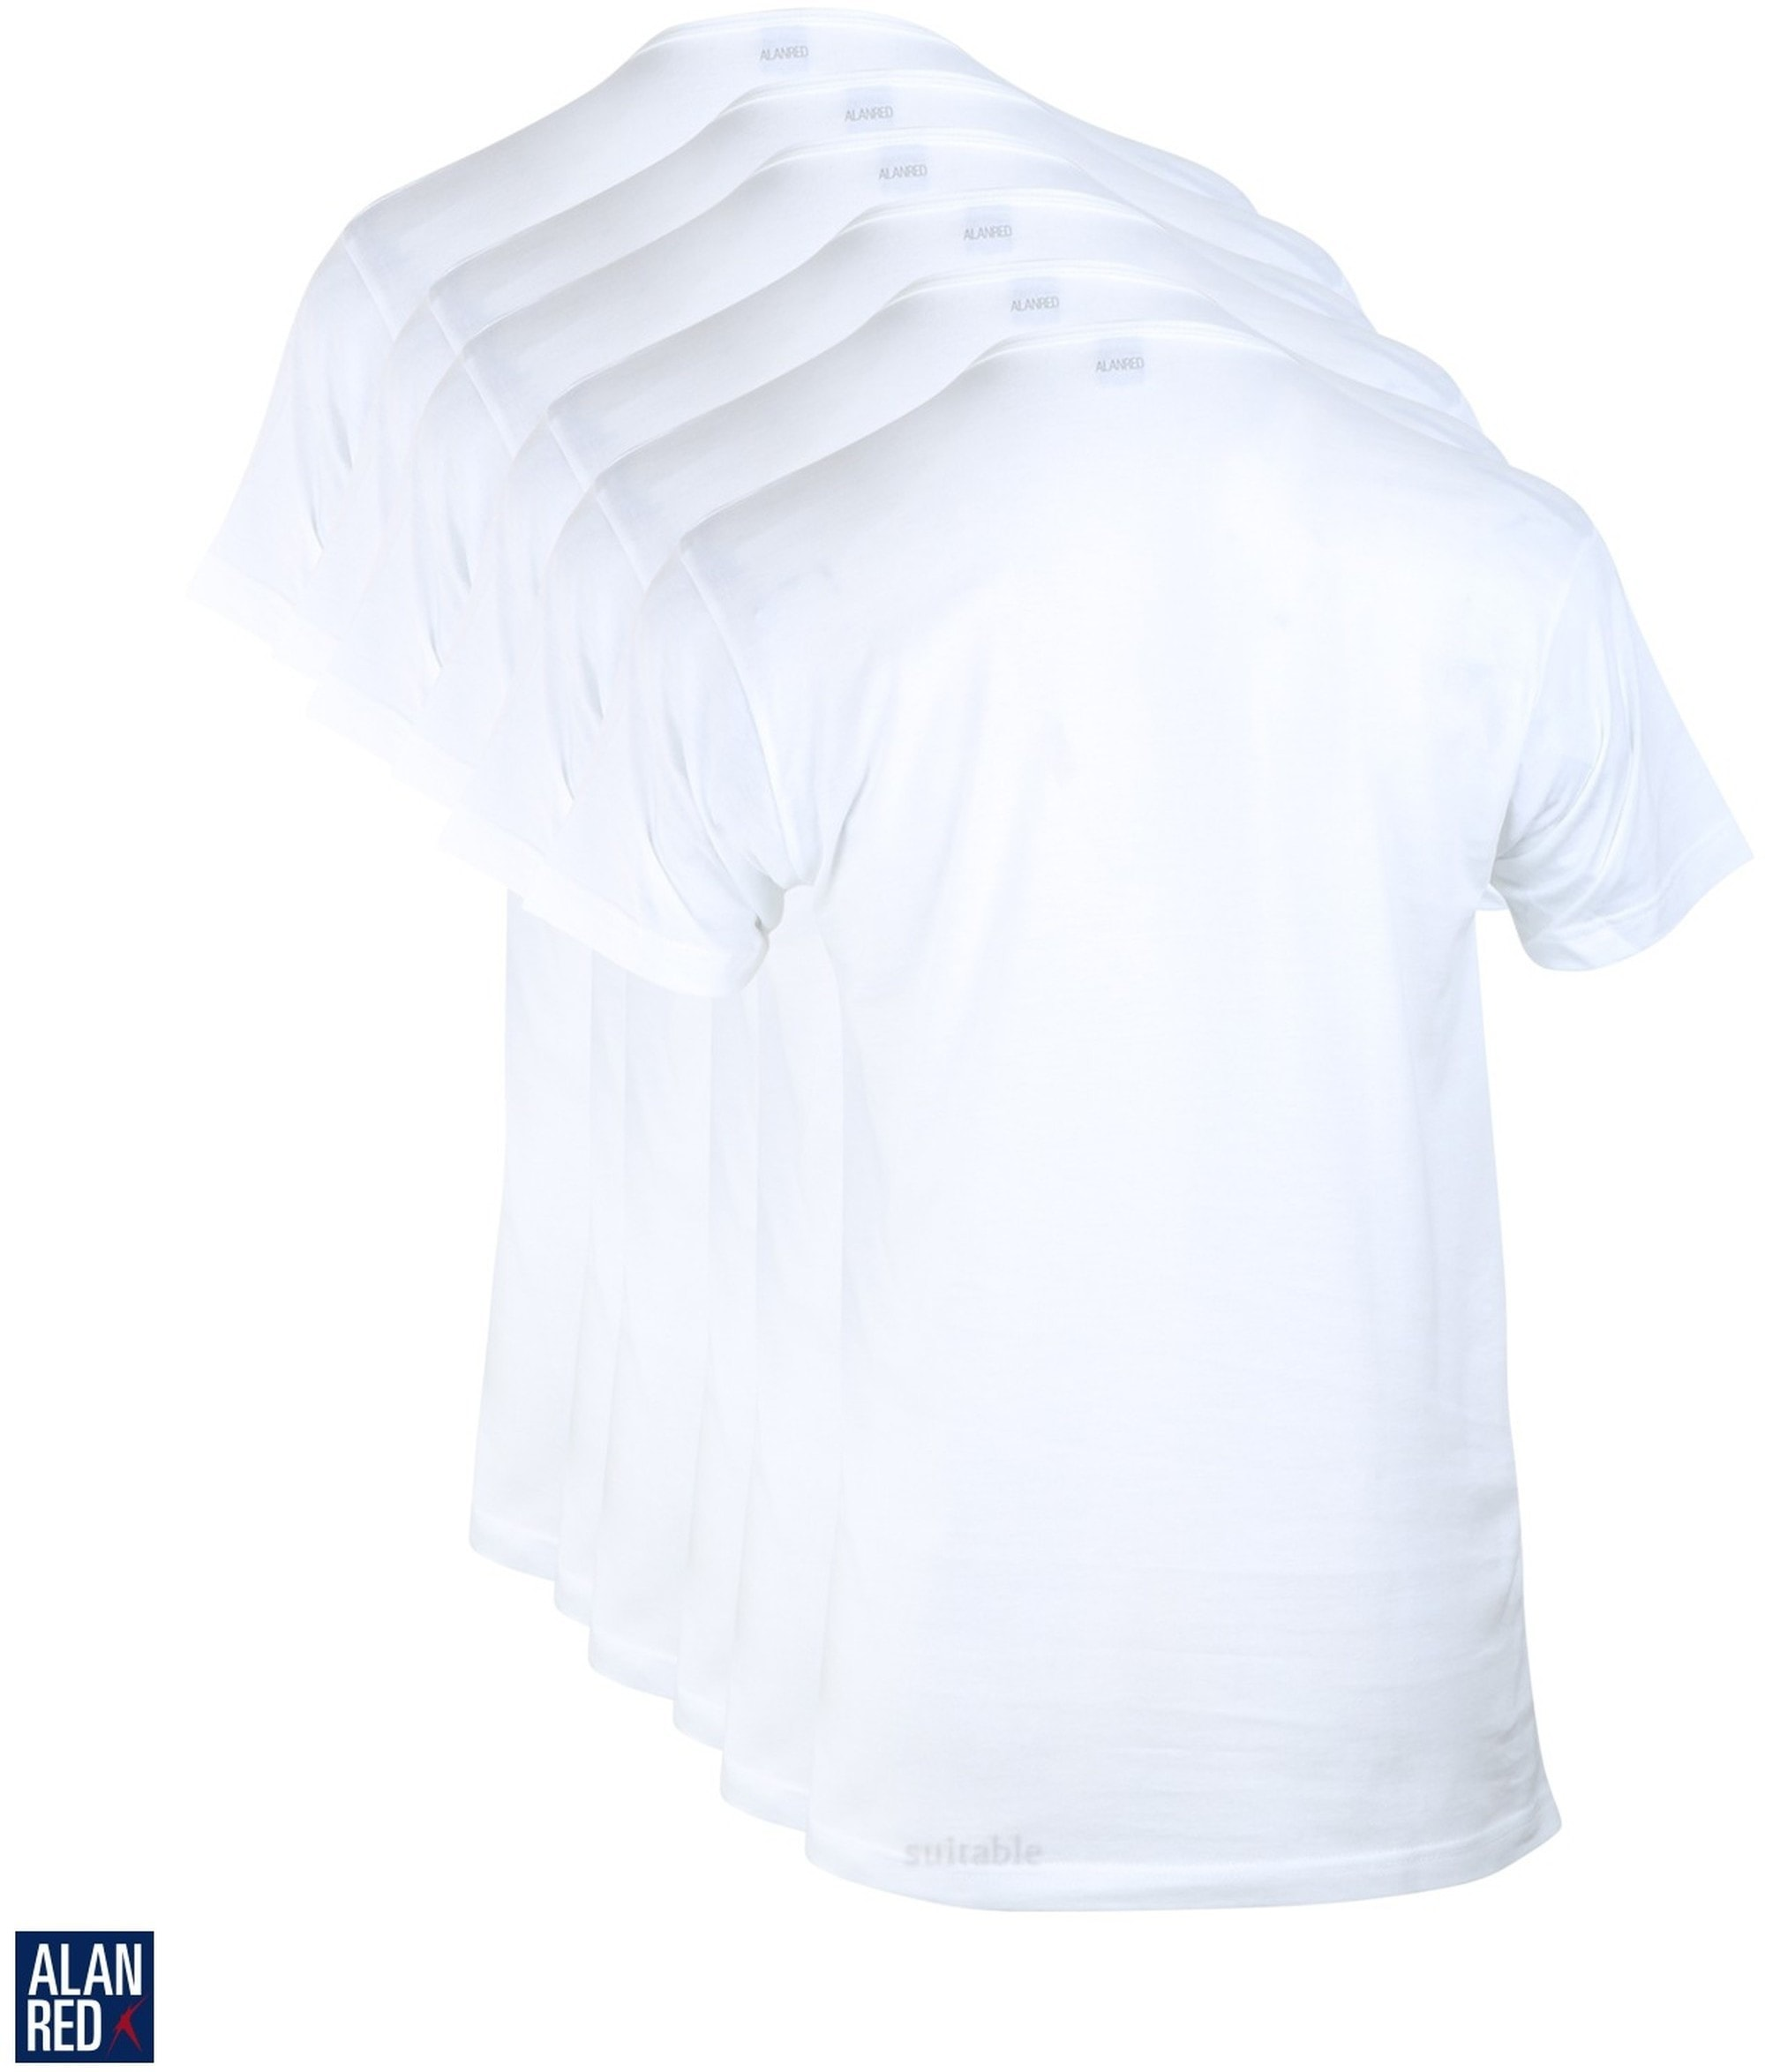 Alan Red Aanbieding Derby O-Hals T-shirts Wit (6Pack) foto 2